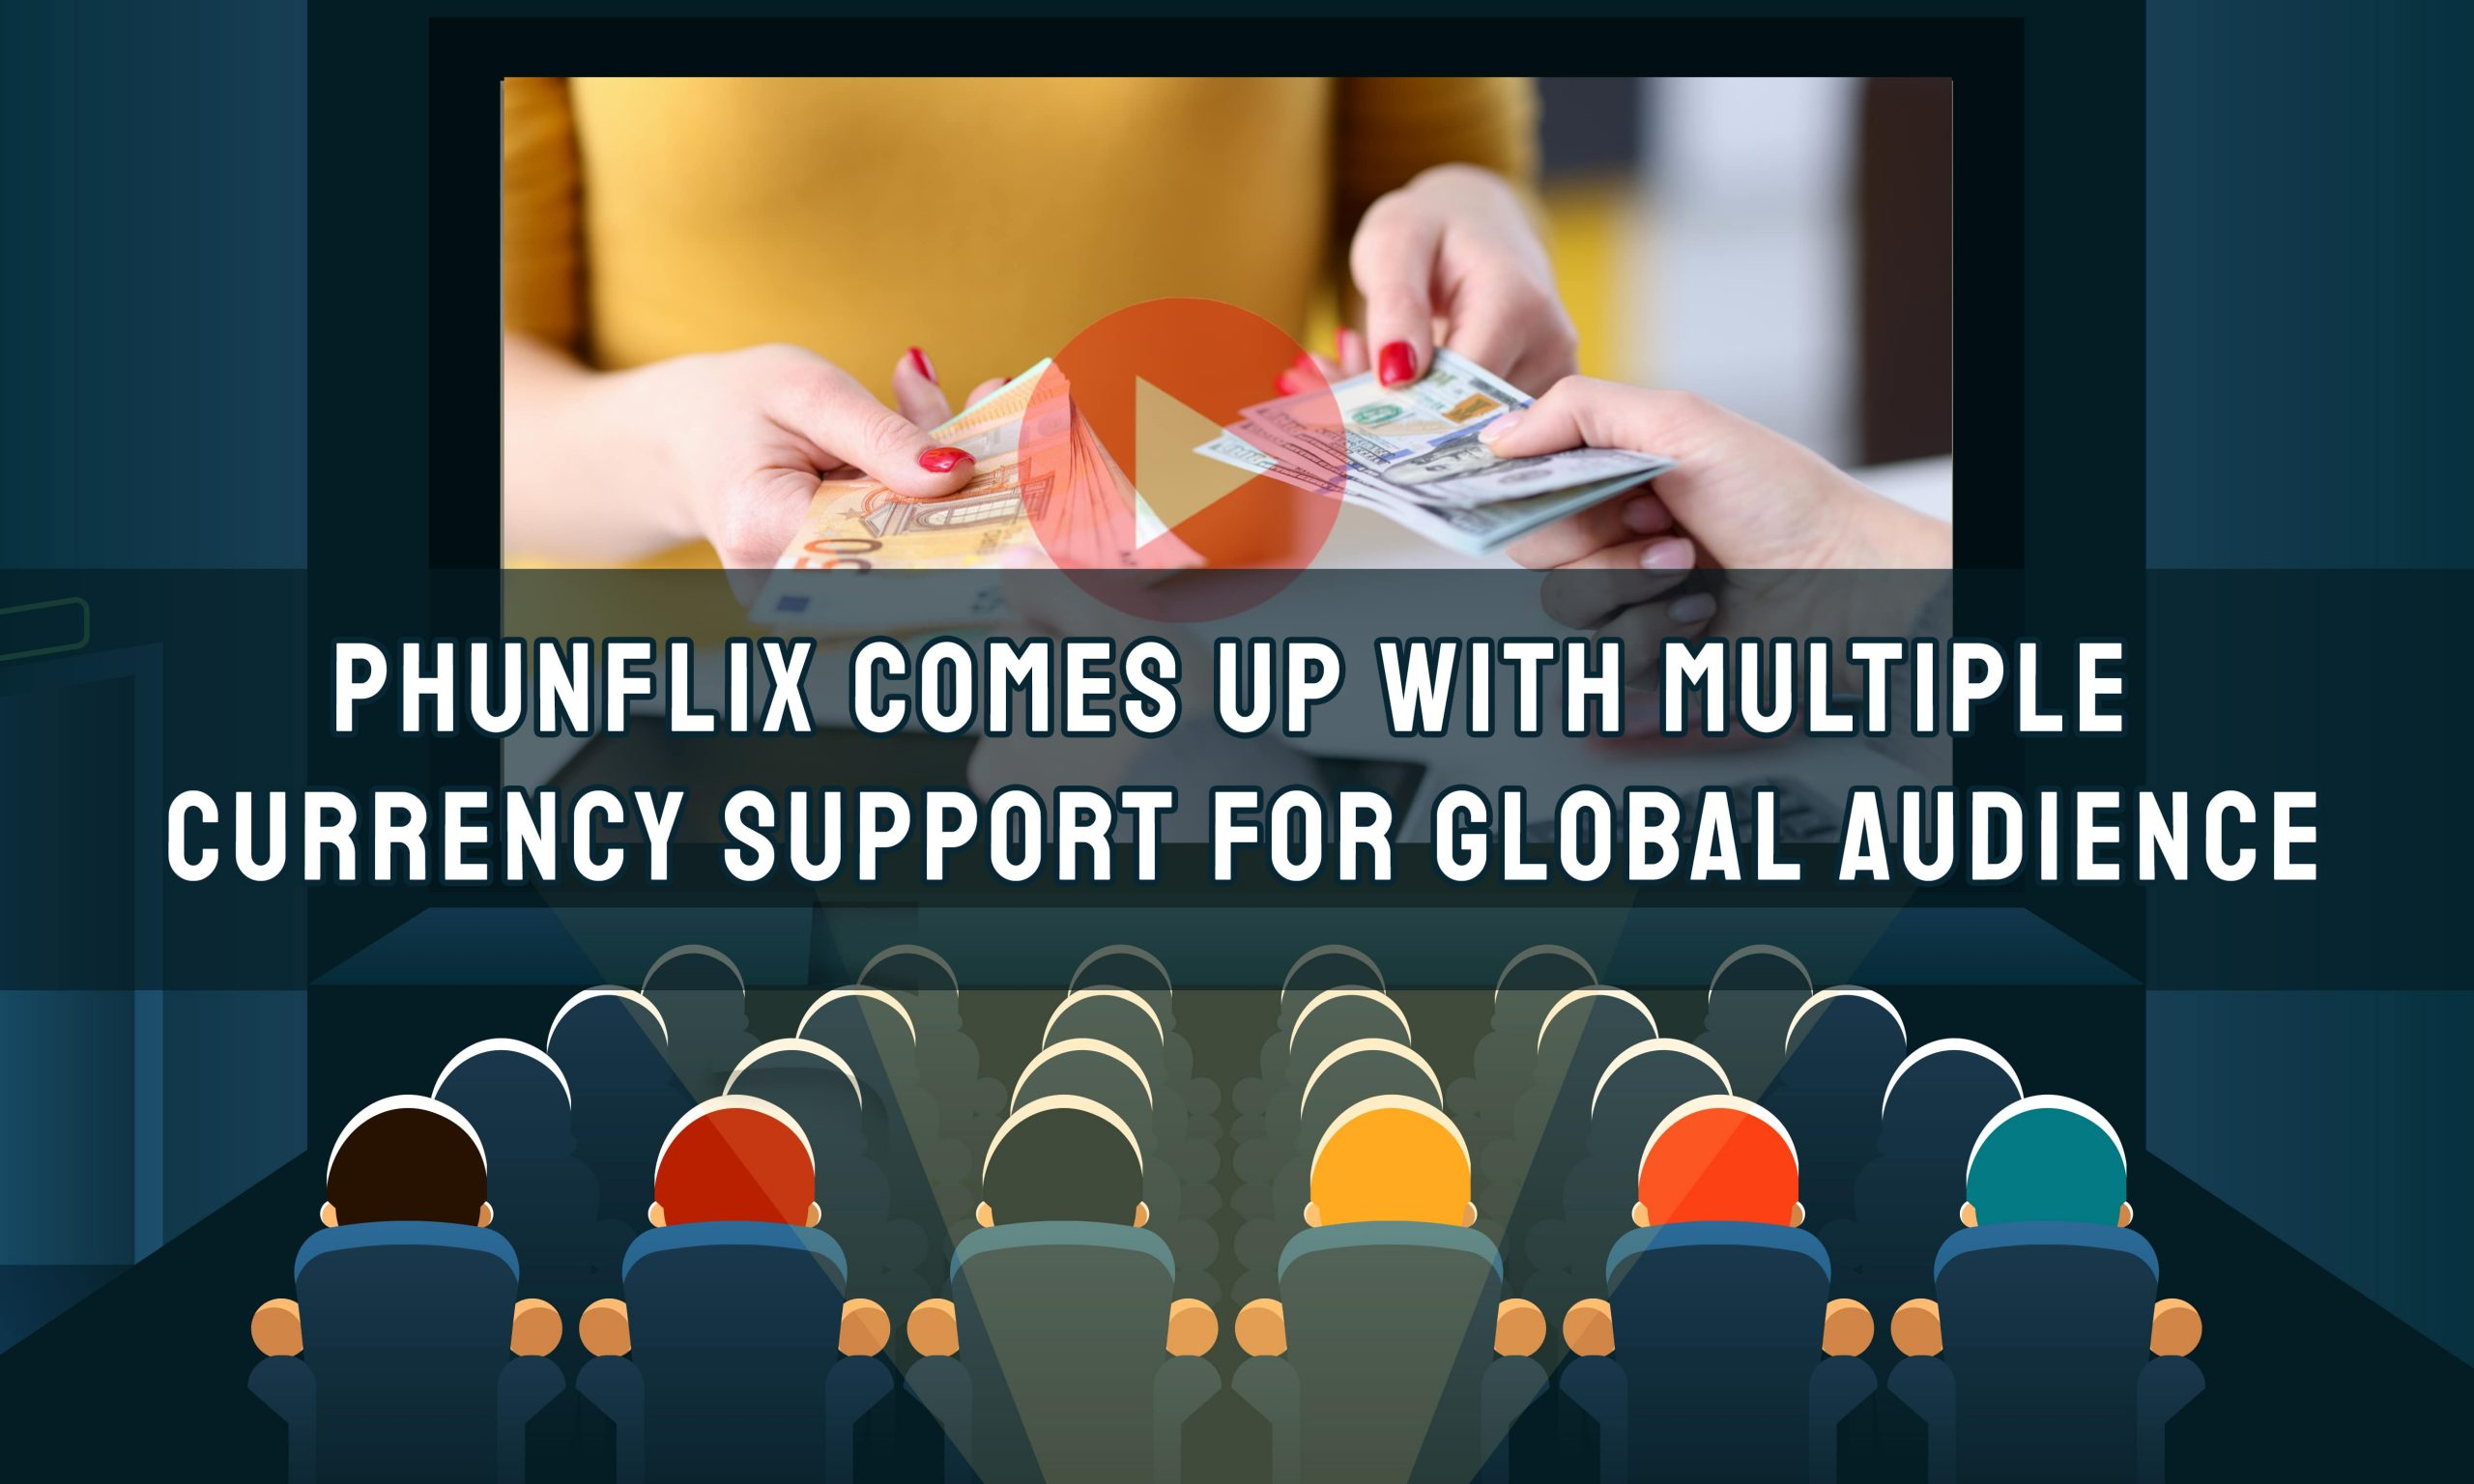 Phunflix Comes Up With Multiple Currency Support For Global Audience